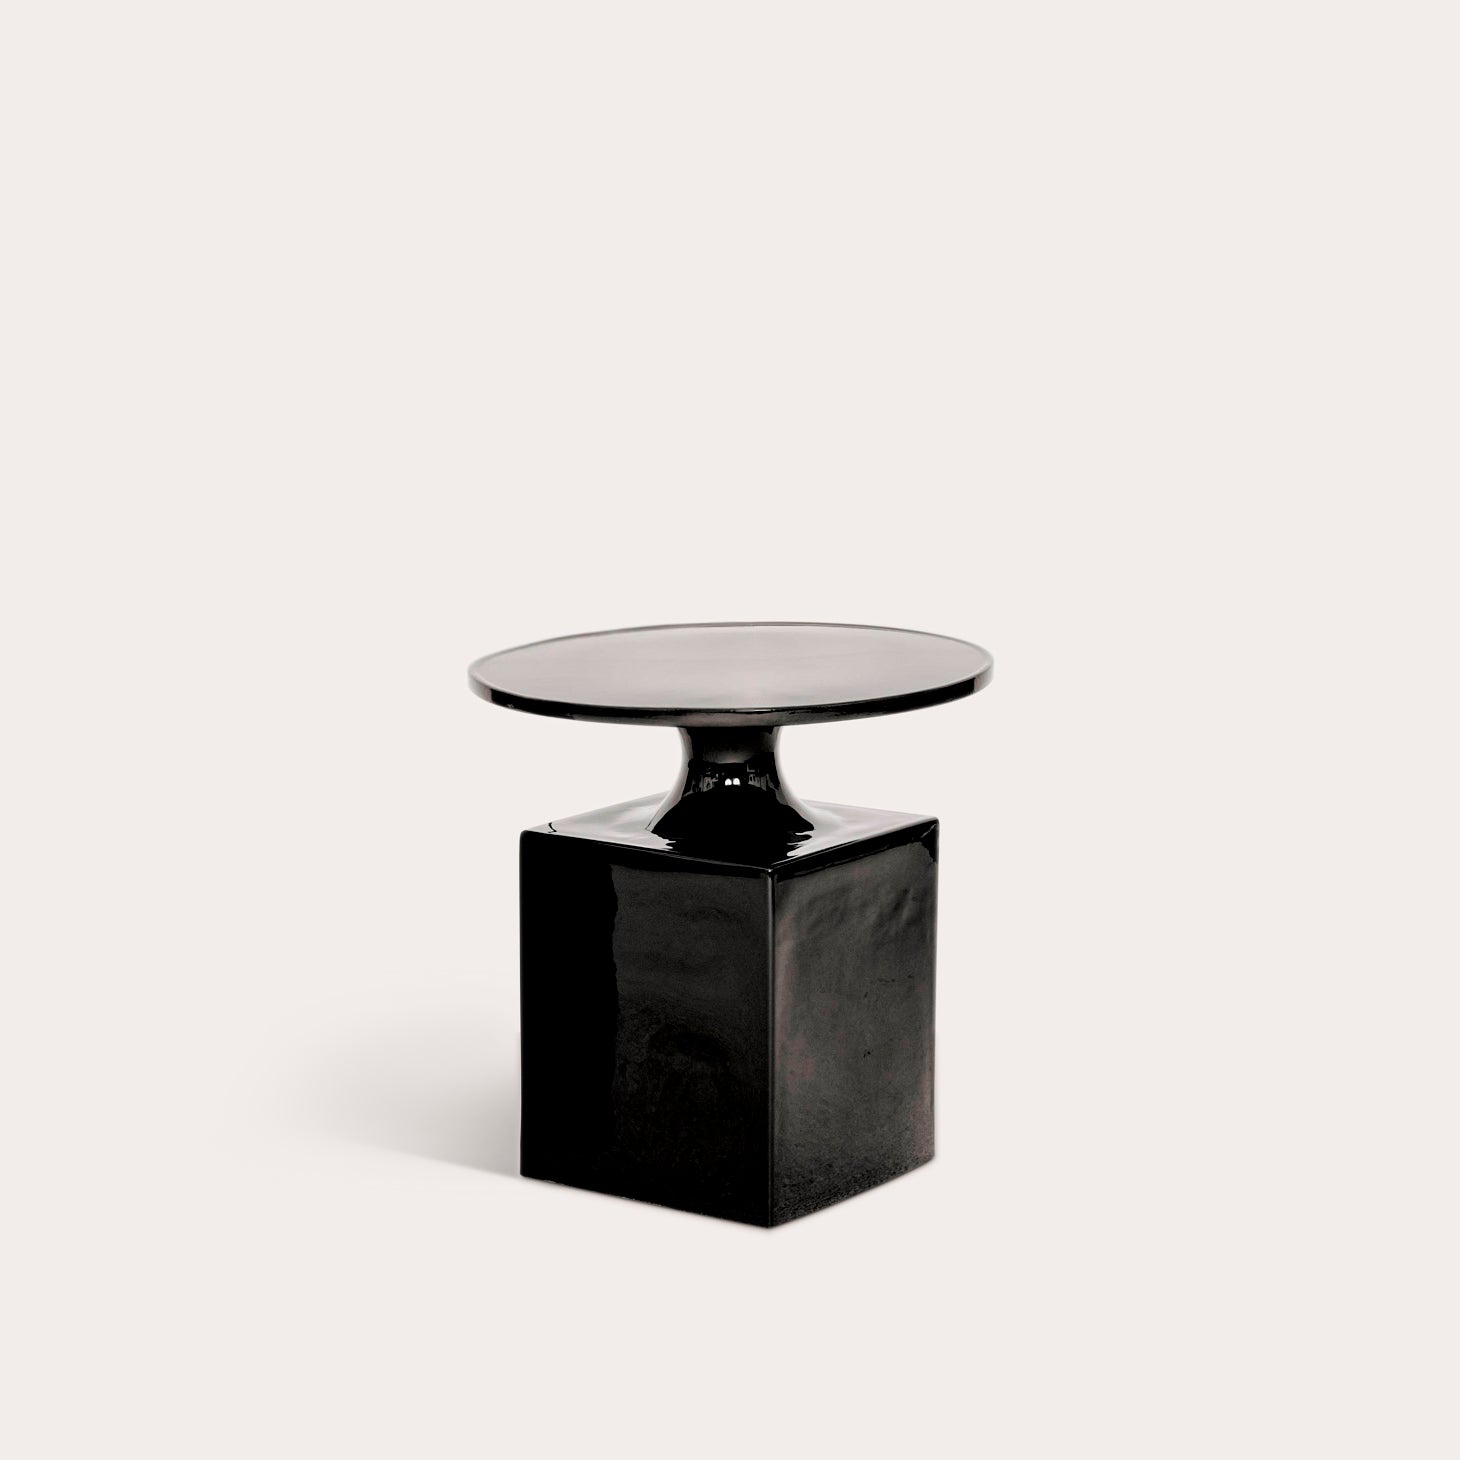 OUK2 Tables Vincent Dupont-Rougier Designer Furniture Sku: 008-230-10337